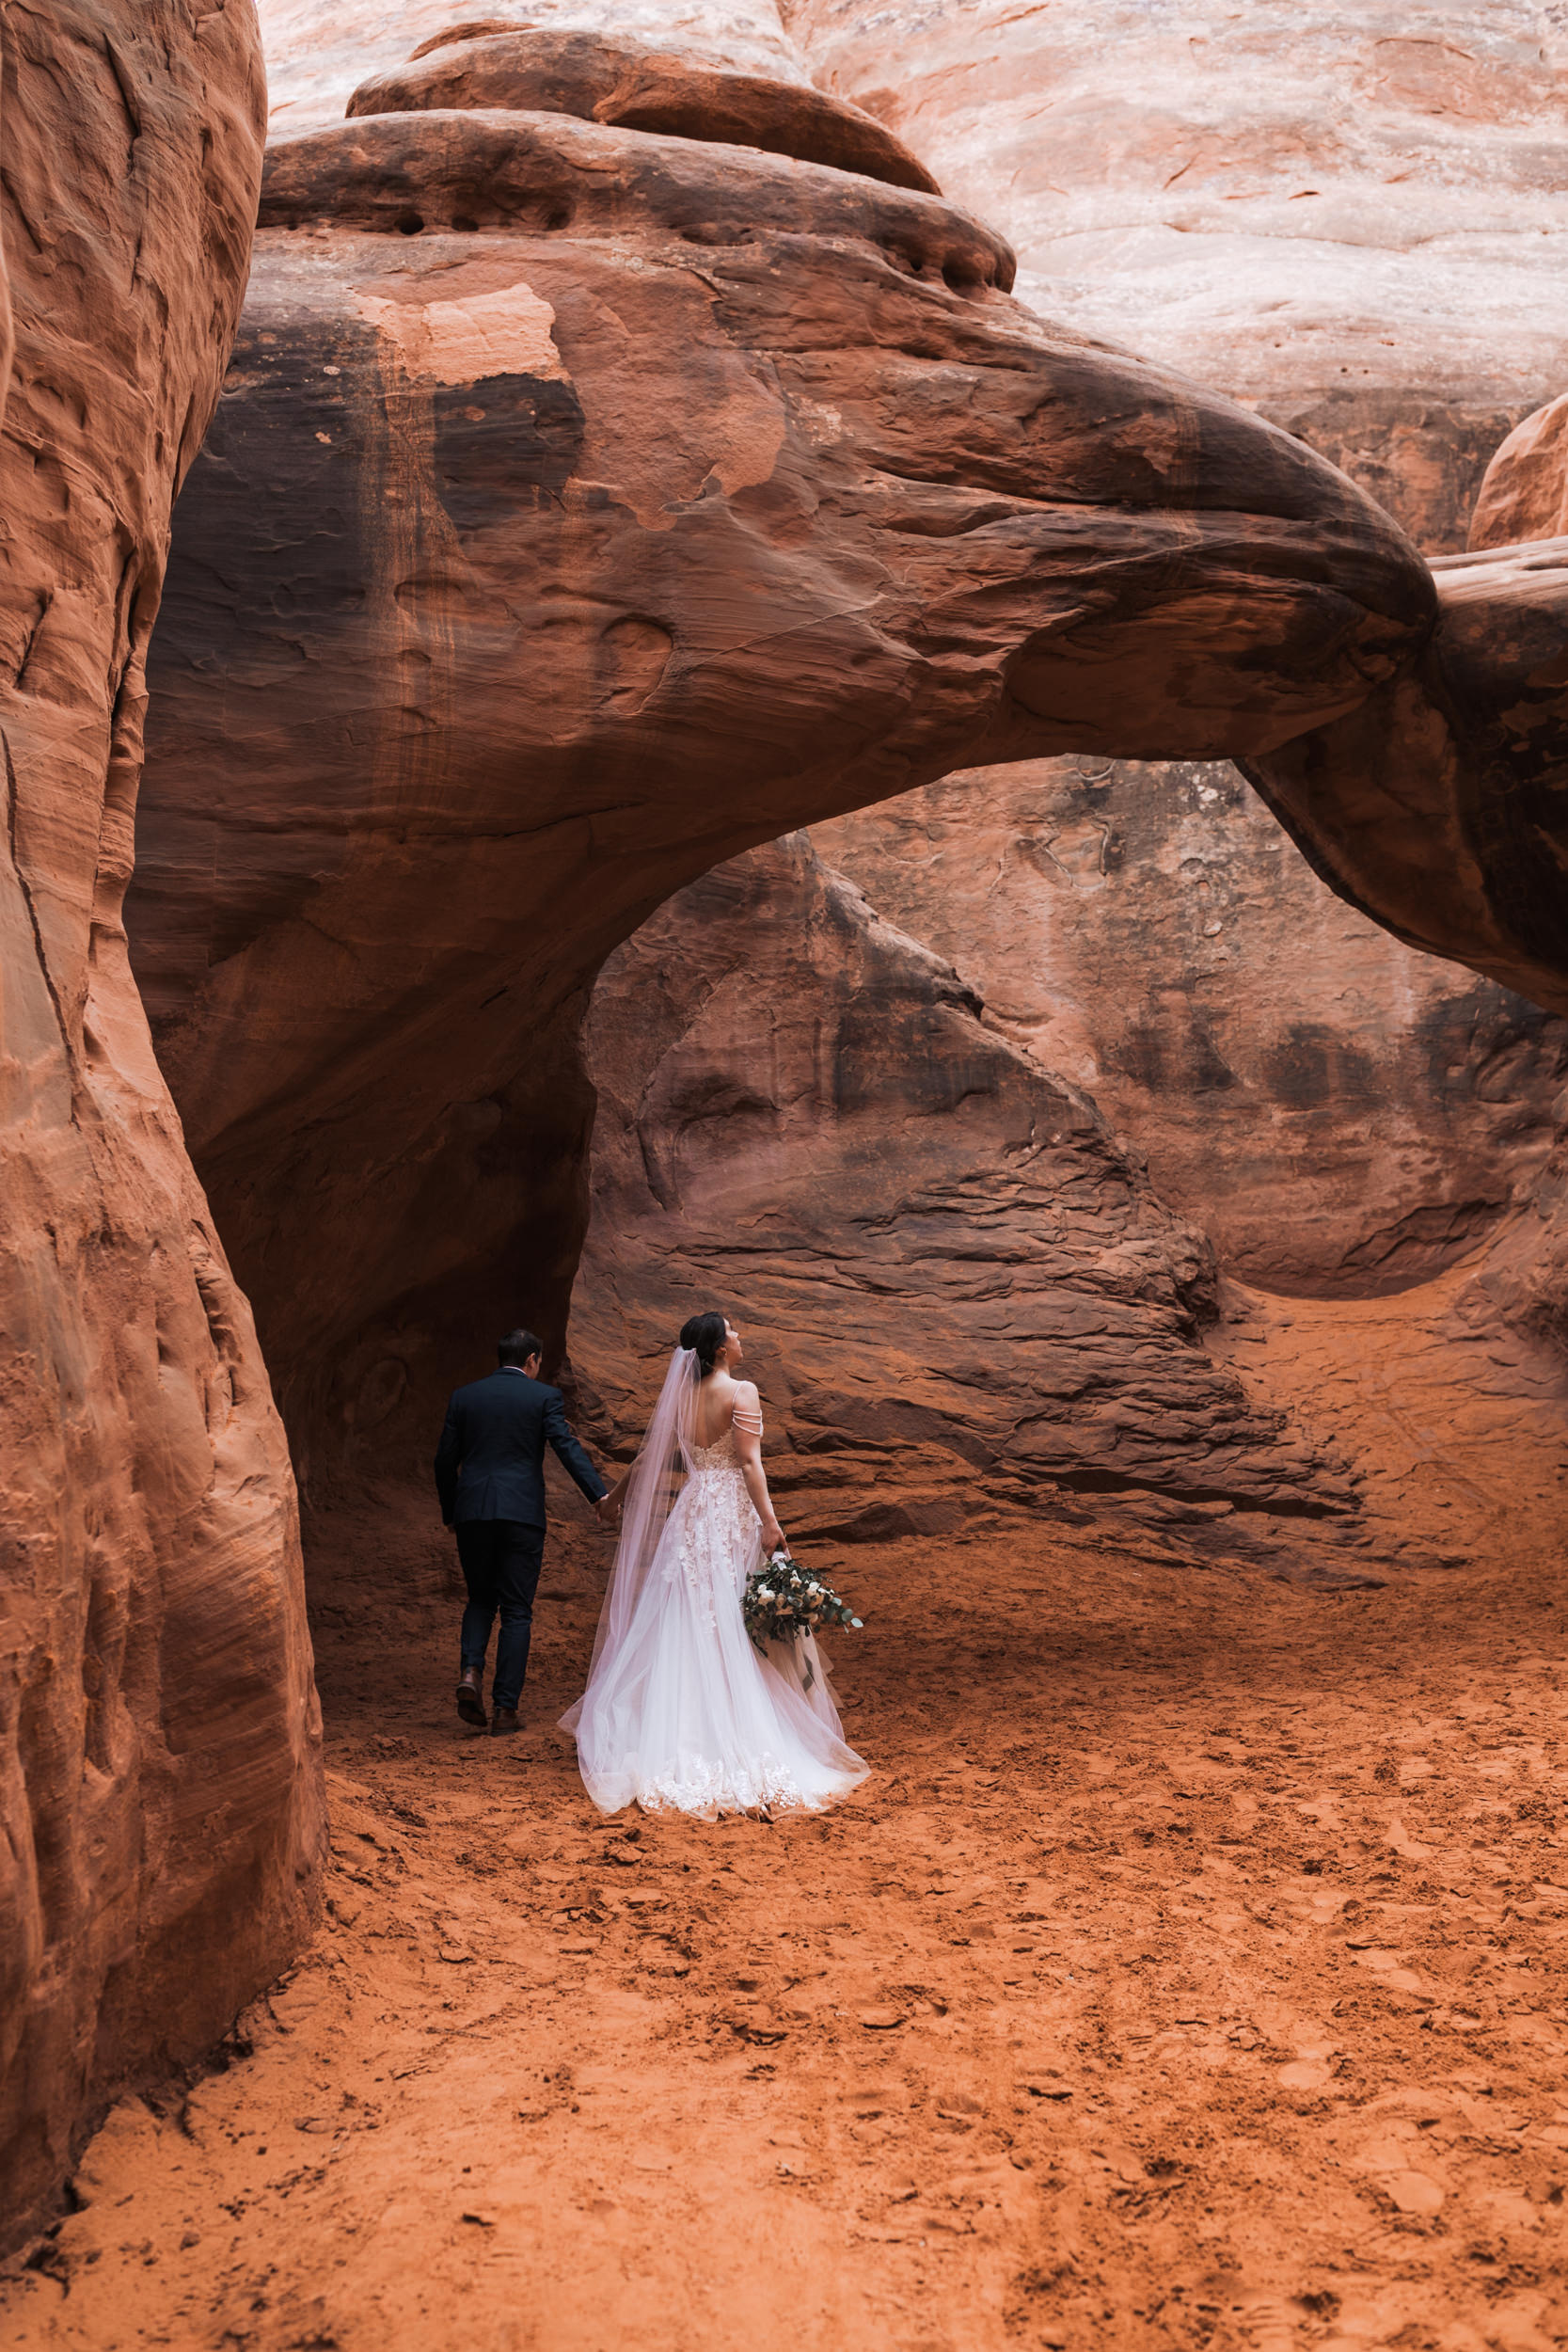 Arches National Park has a few designated wedding ceremony locations. Sand Dune arch is one. Just make sure to get your permit!